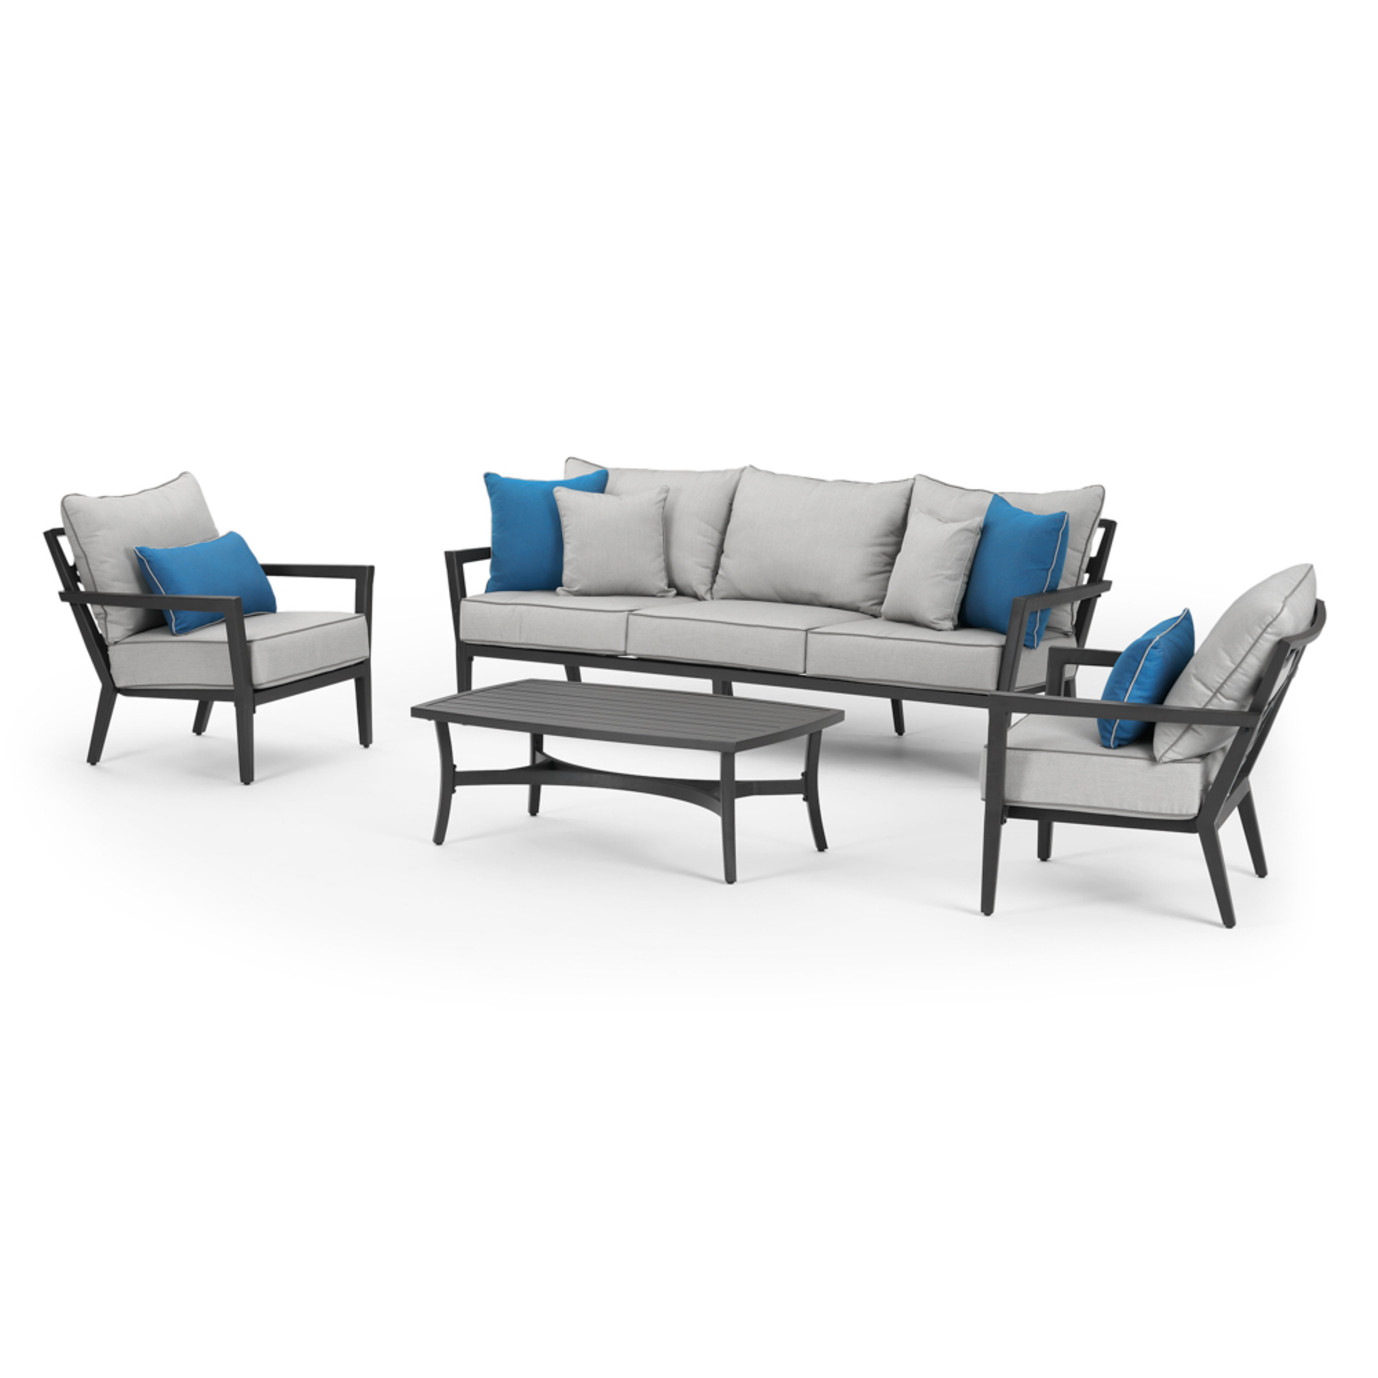 Venetia™ 4 Piece Seating Set